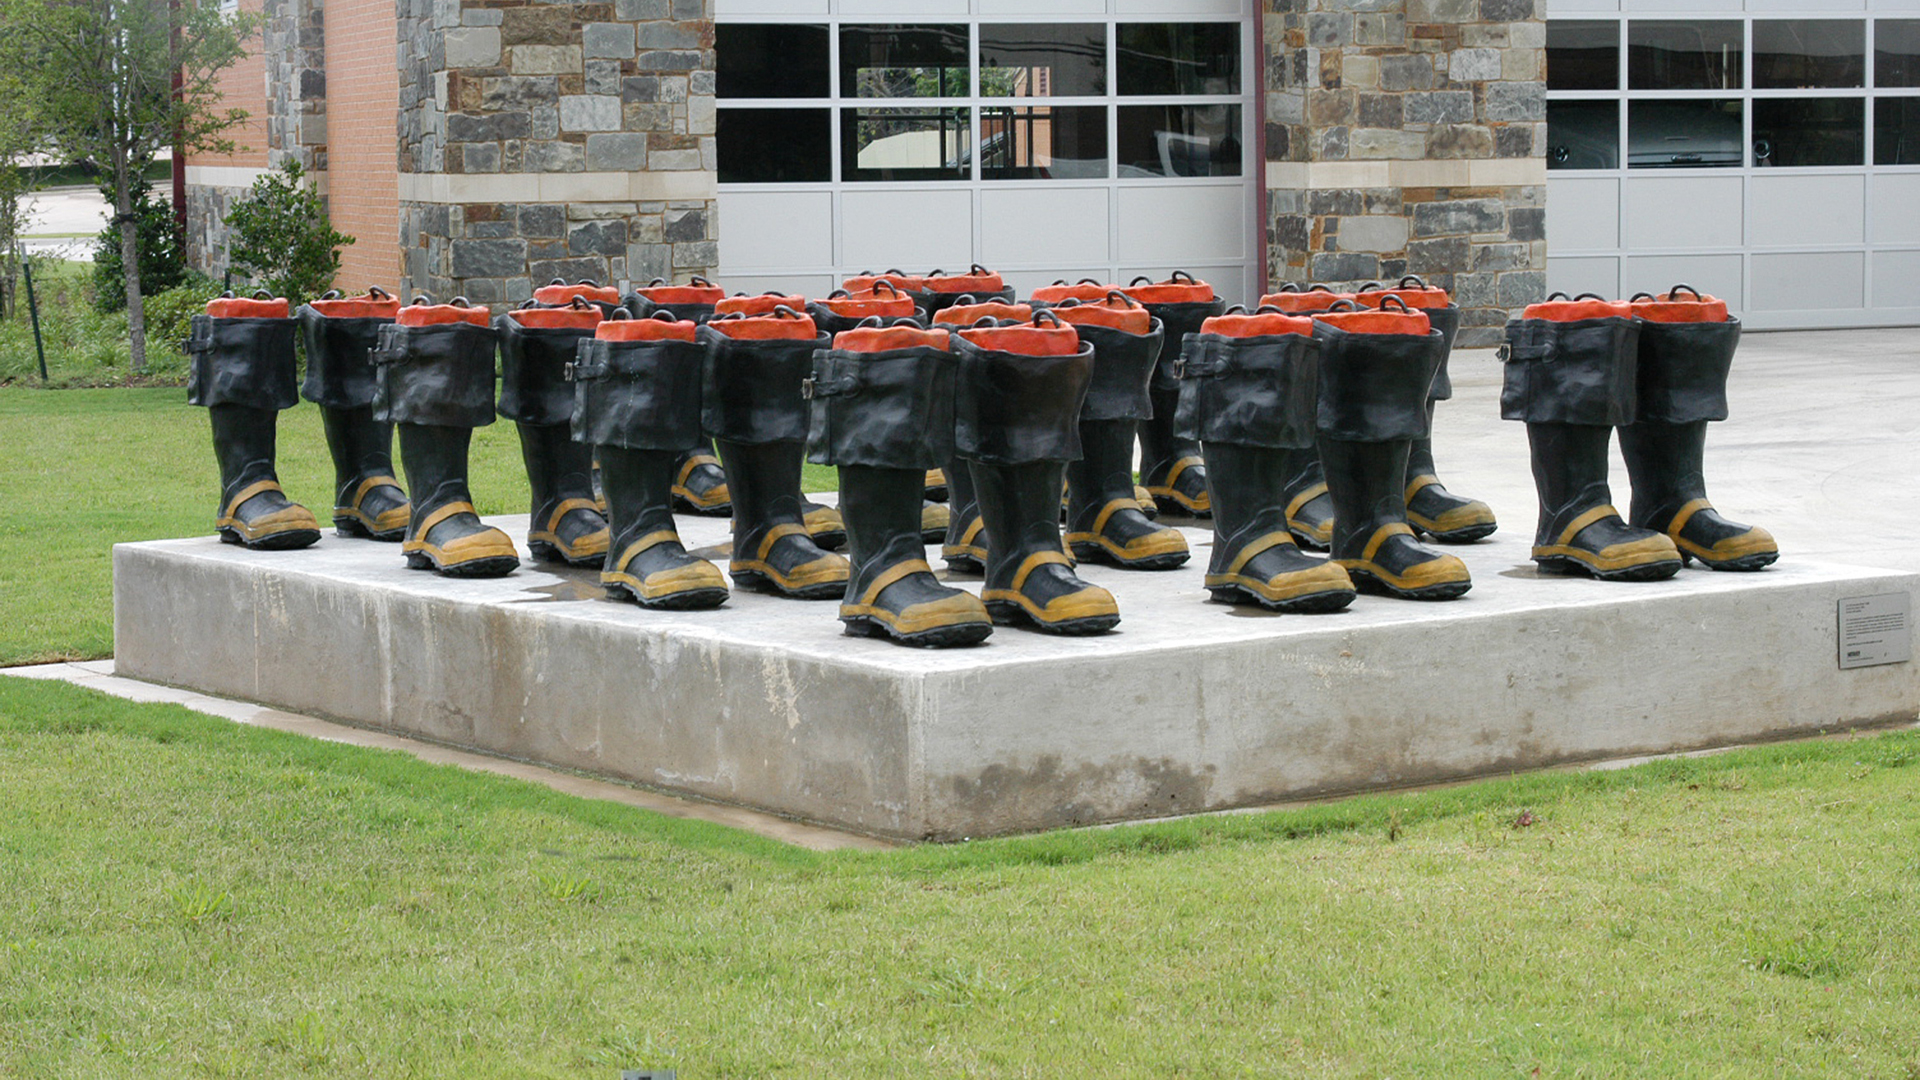 art of boots at fire station